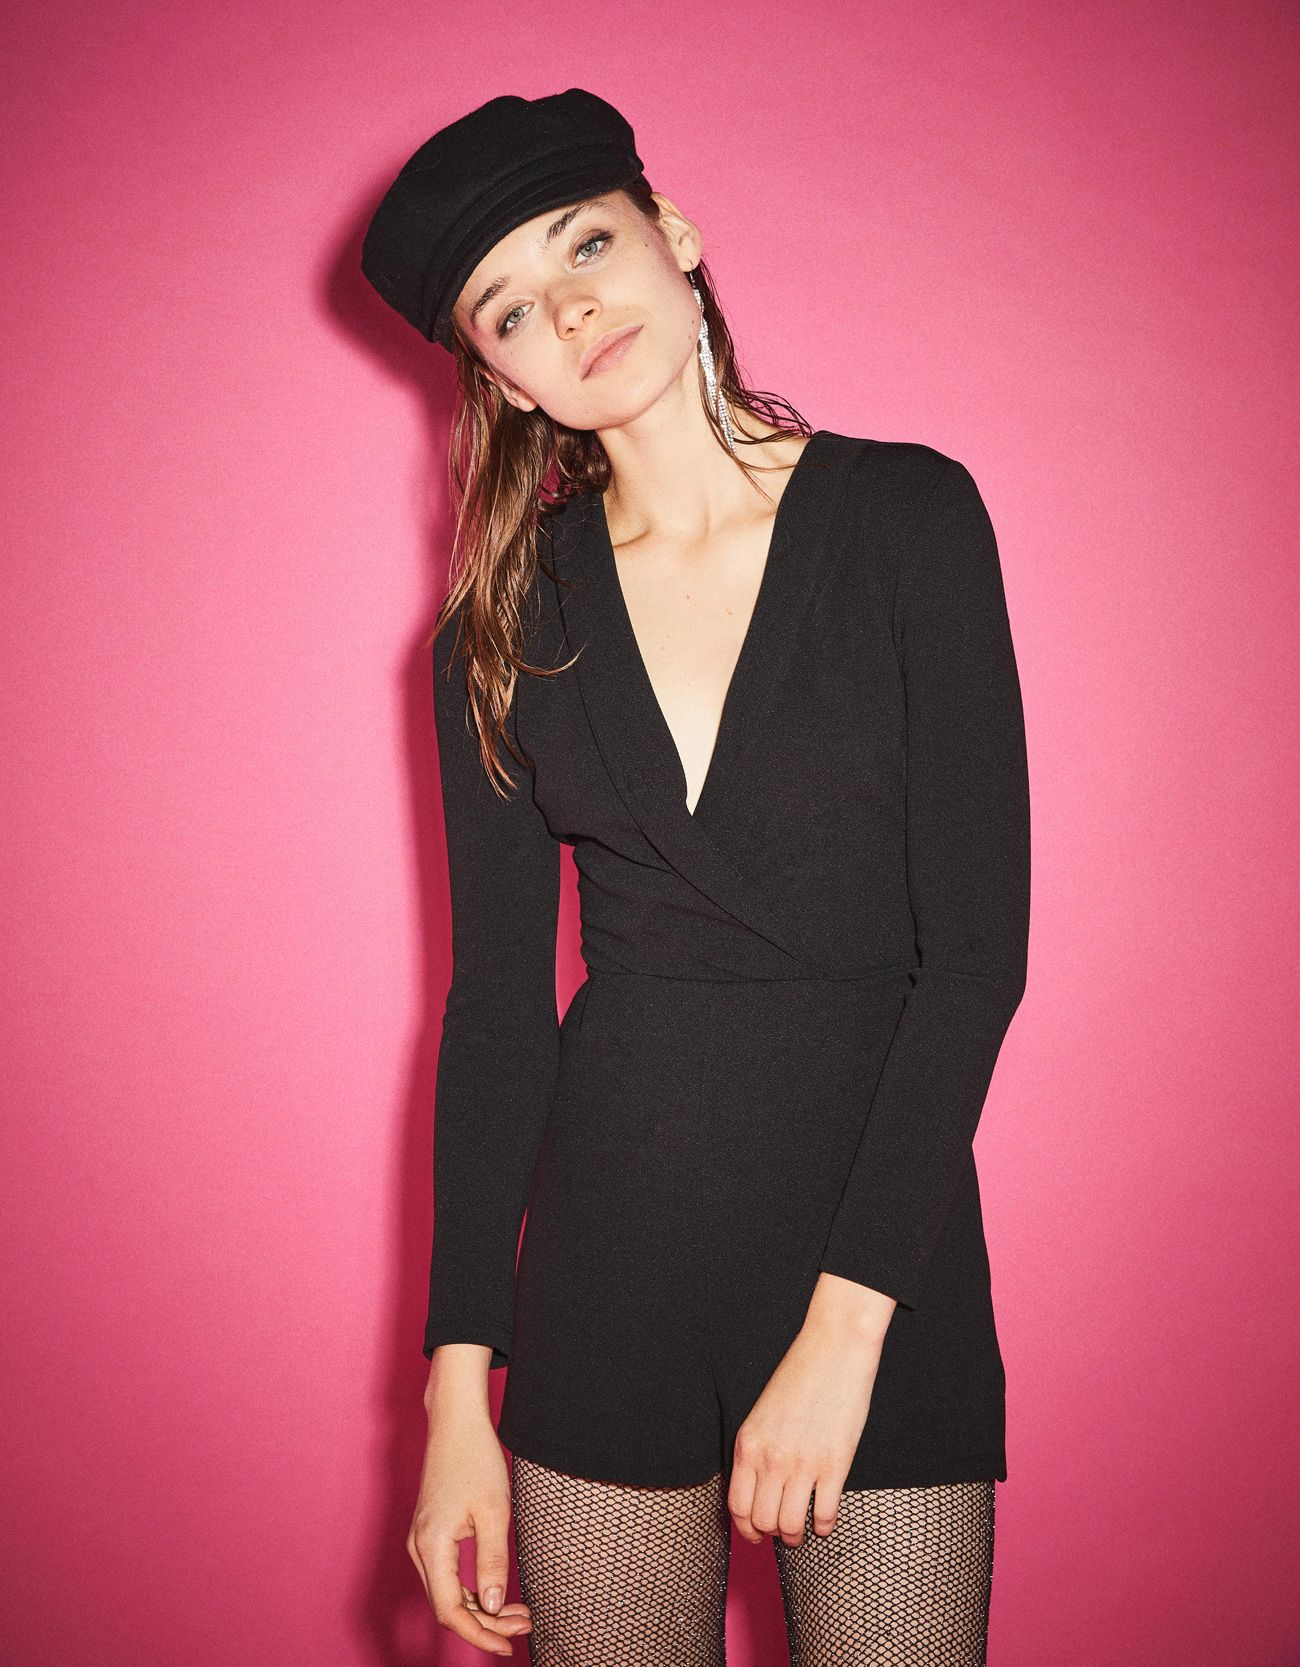 fa297ec774 Romper with tuxedo collar. Discover this and many more items in Bershka  with new products